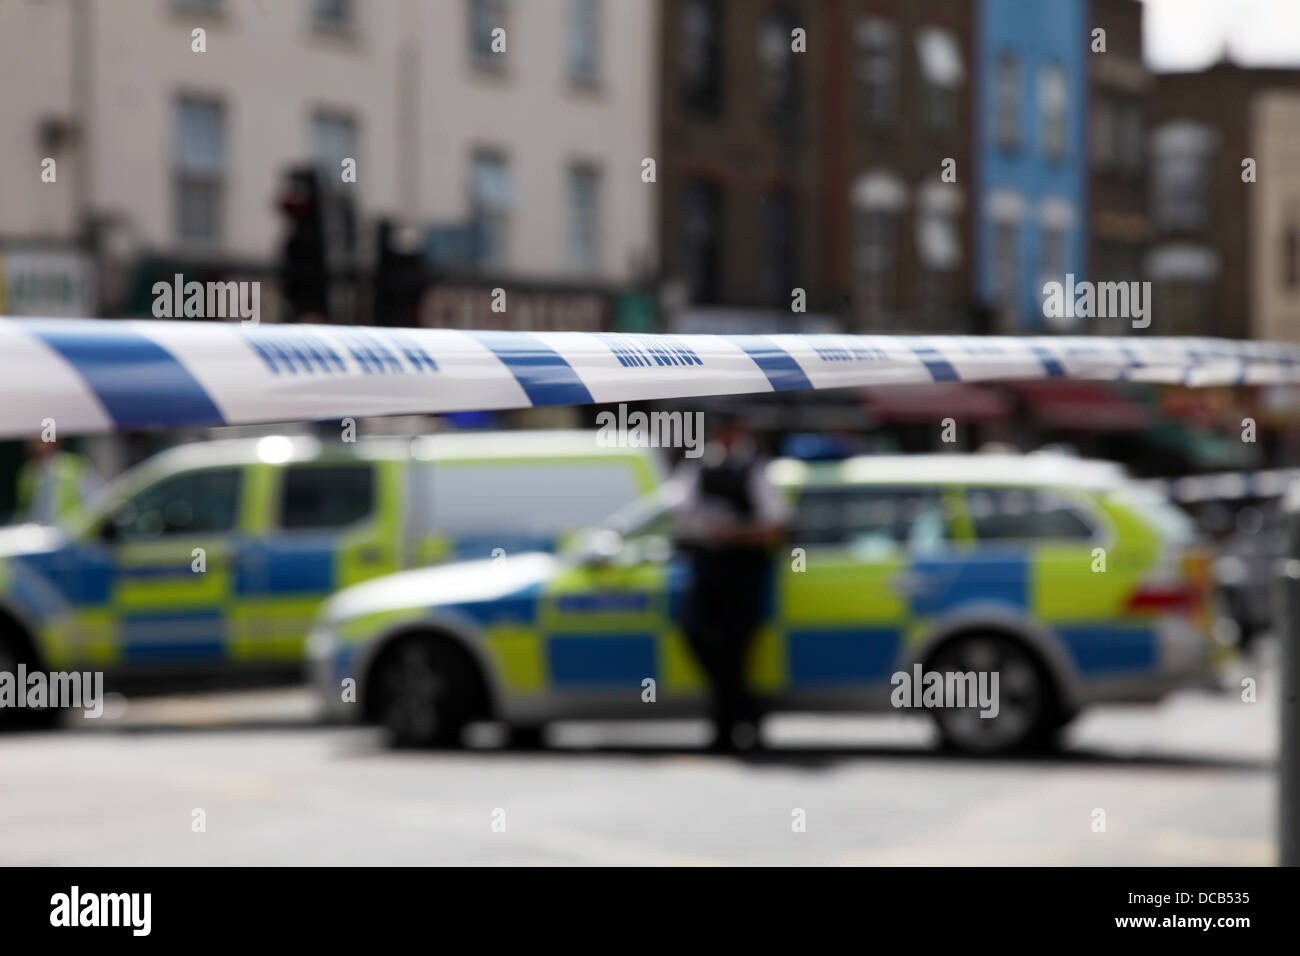 Police line with incident in the background and several police cars - Stock Image